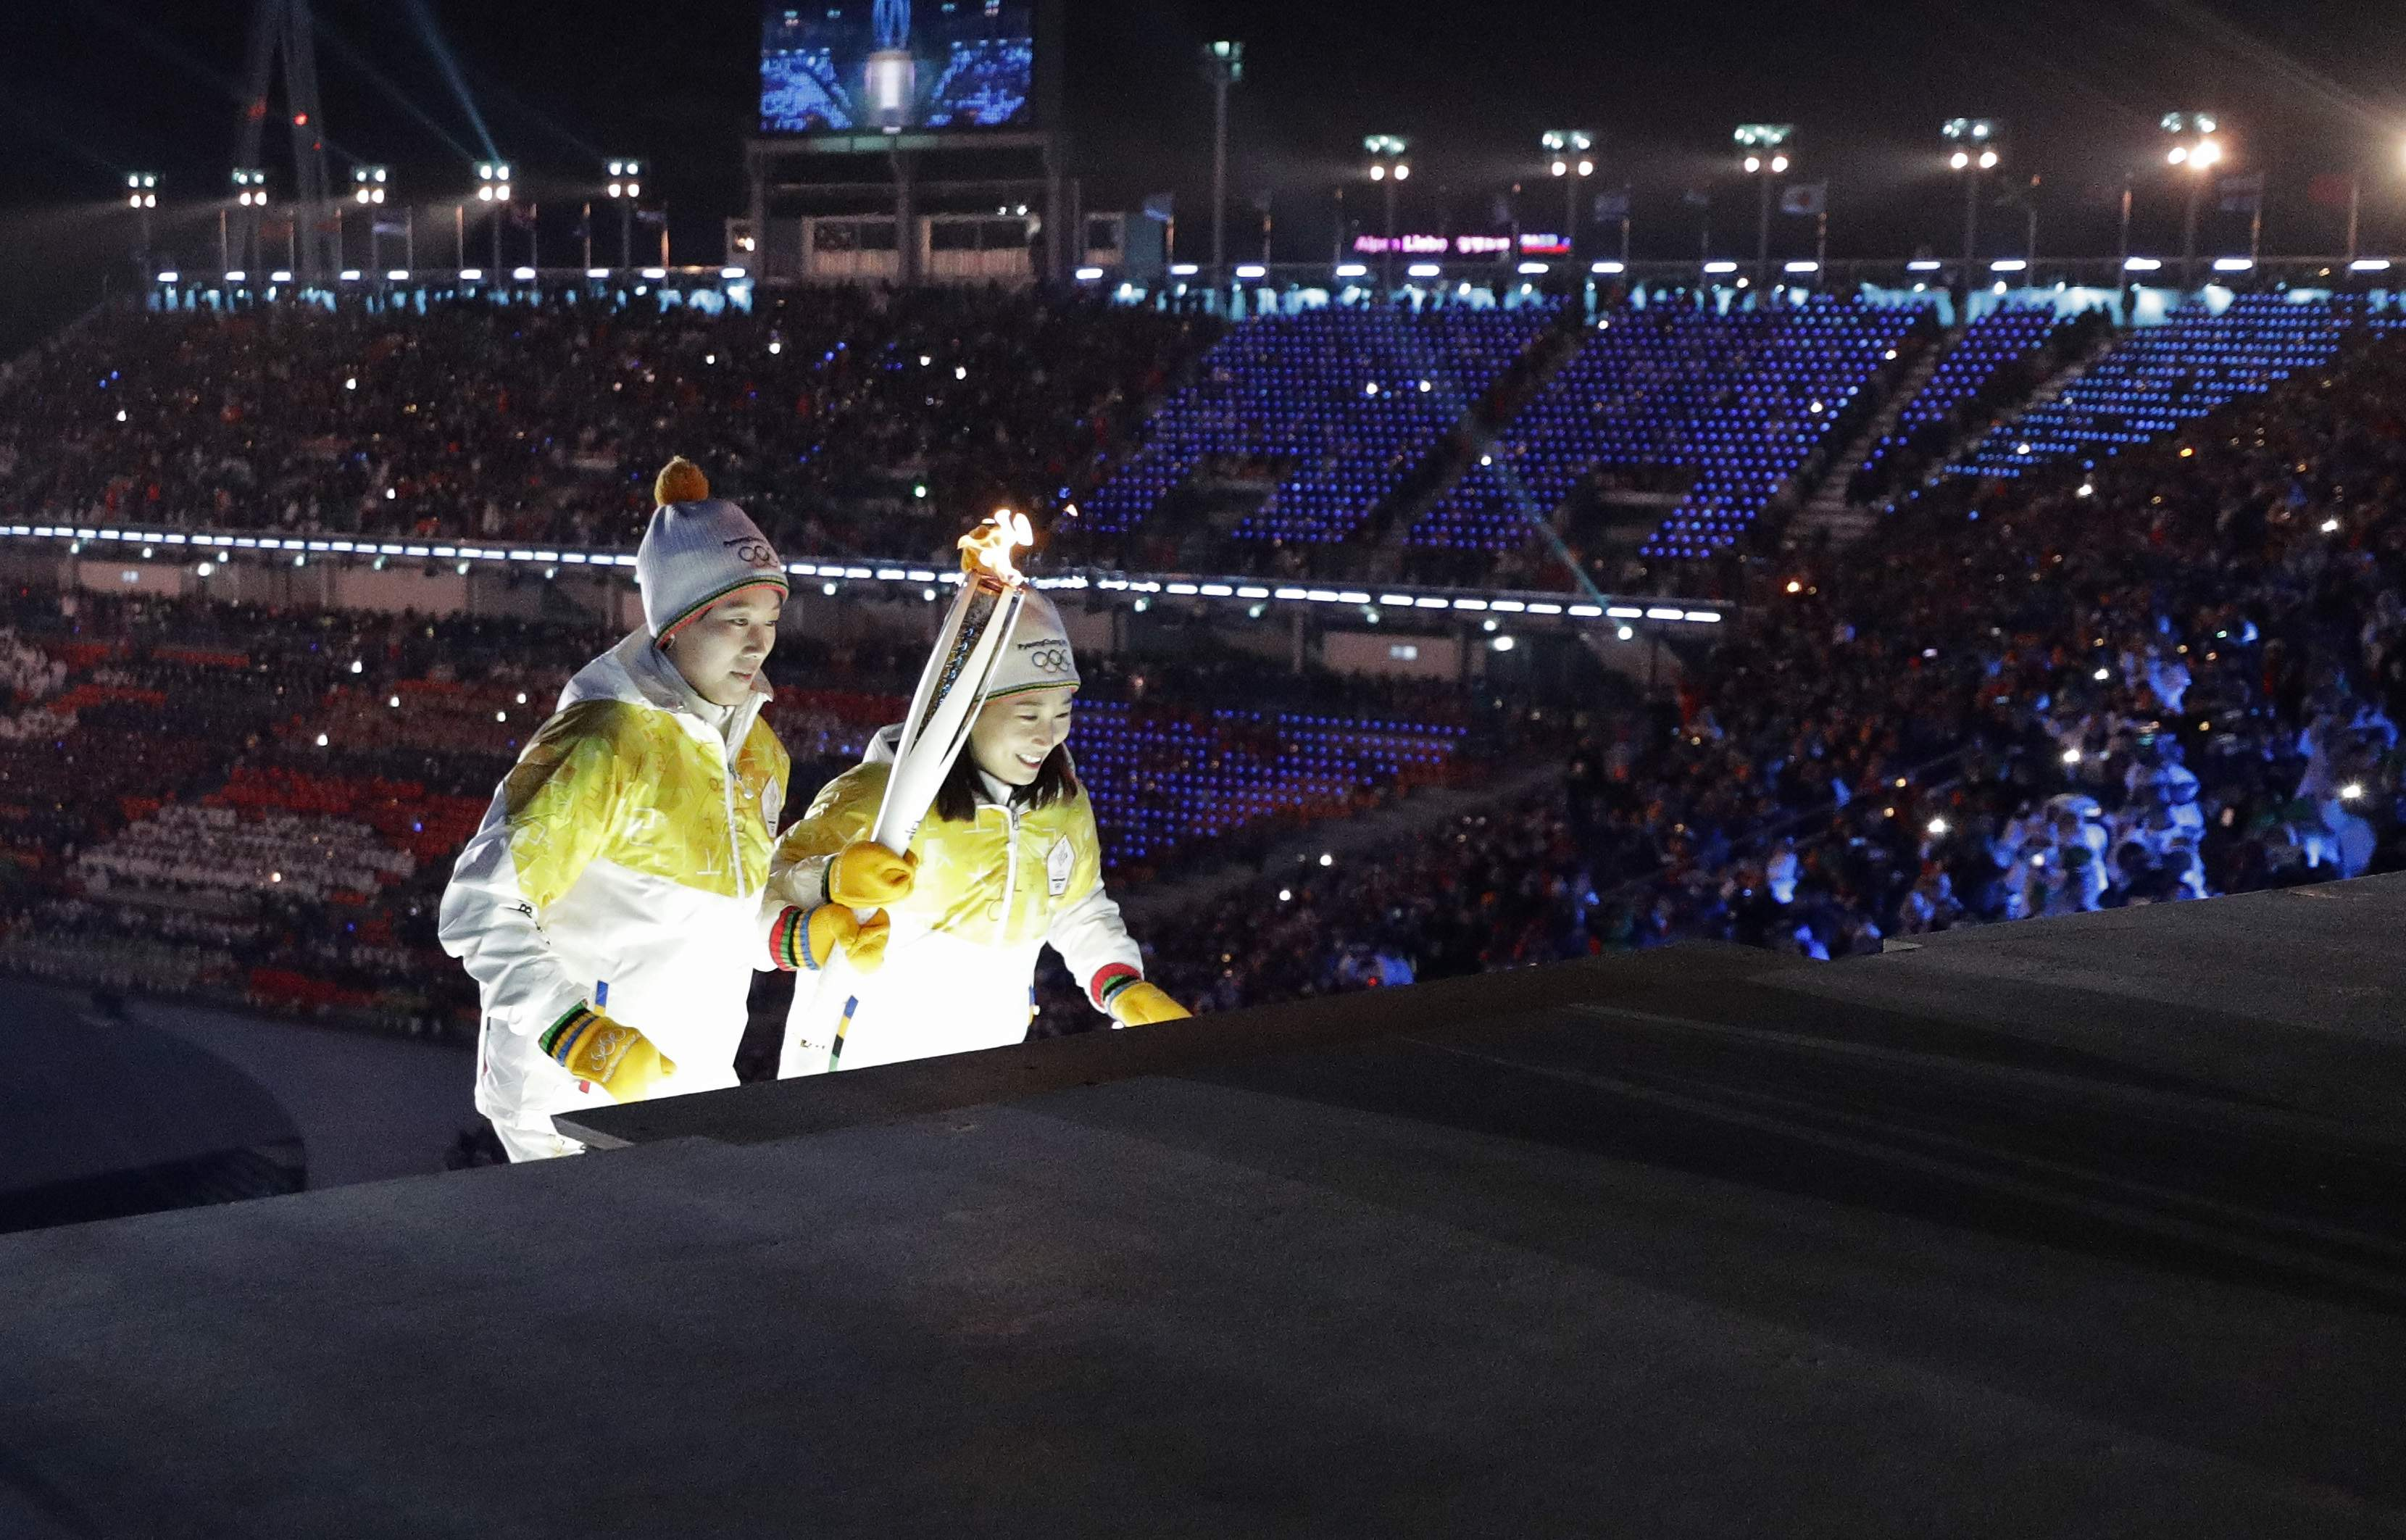 Torchbearers climb stairs before lighting the Olympic flame during the opening ceremony of the 2018 Winter Olympics in Pyeongchang, South Korea, Friday, Feb. 9, 2018. (AP Photo/David J. Phillip,Pool)